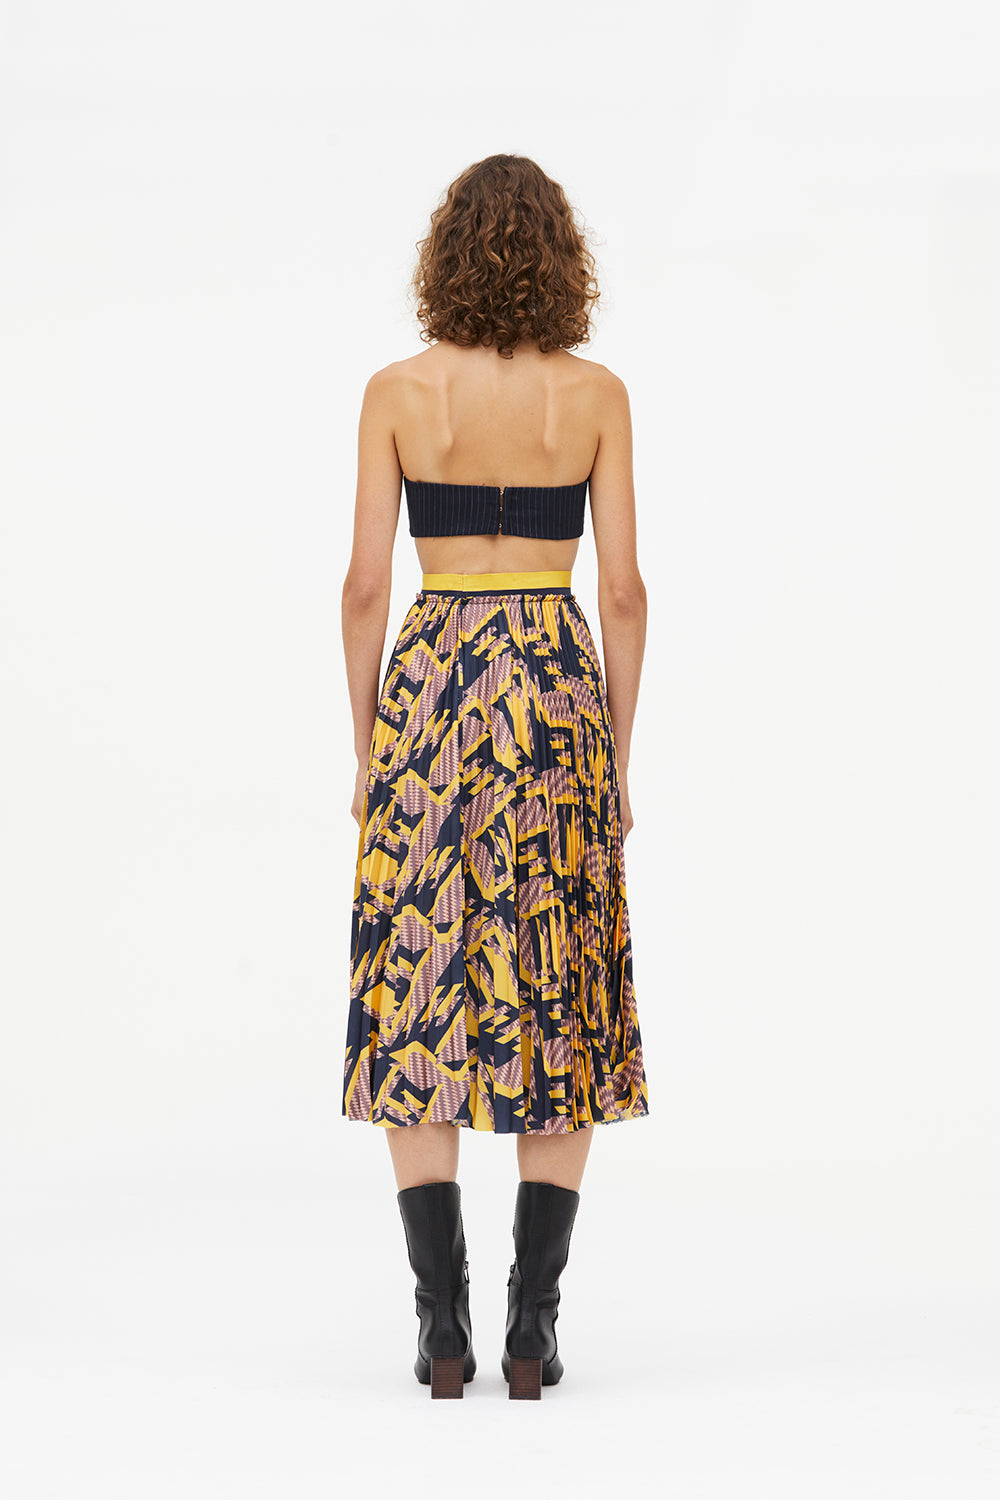 POETS OF ACTION SKIRT